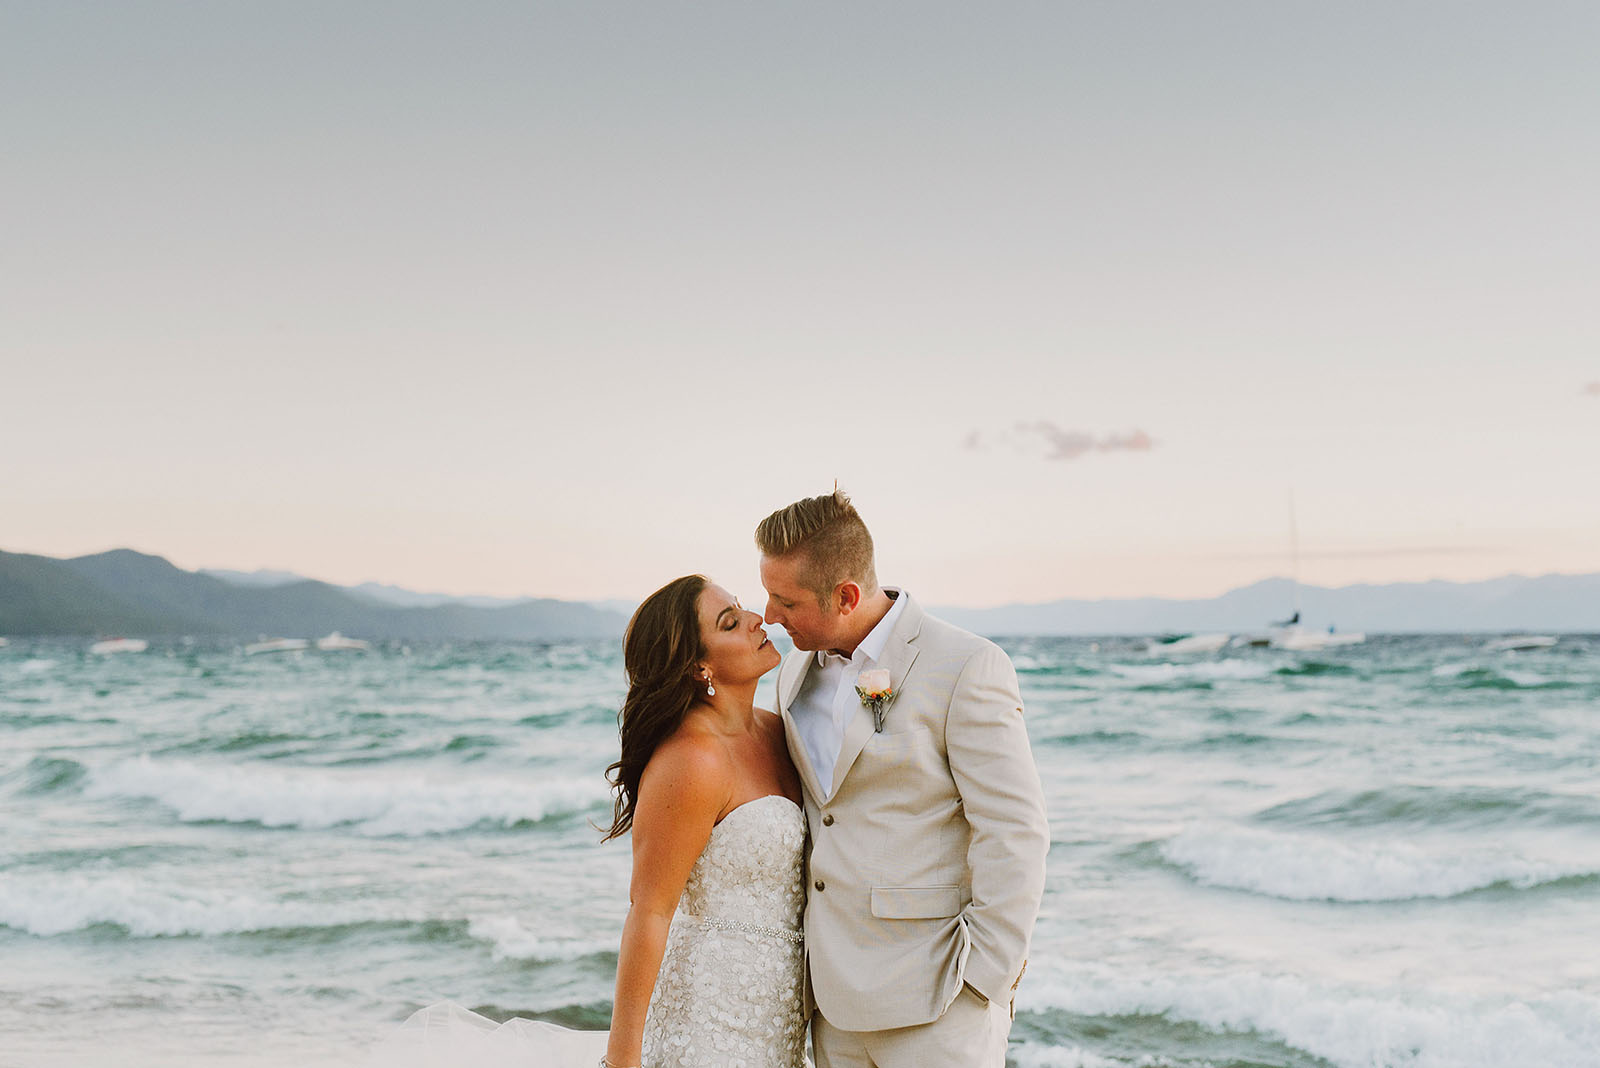 Sunset portraits on the beach at an Incline Village wedding in North Lake Tahoe